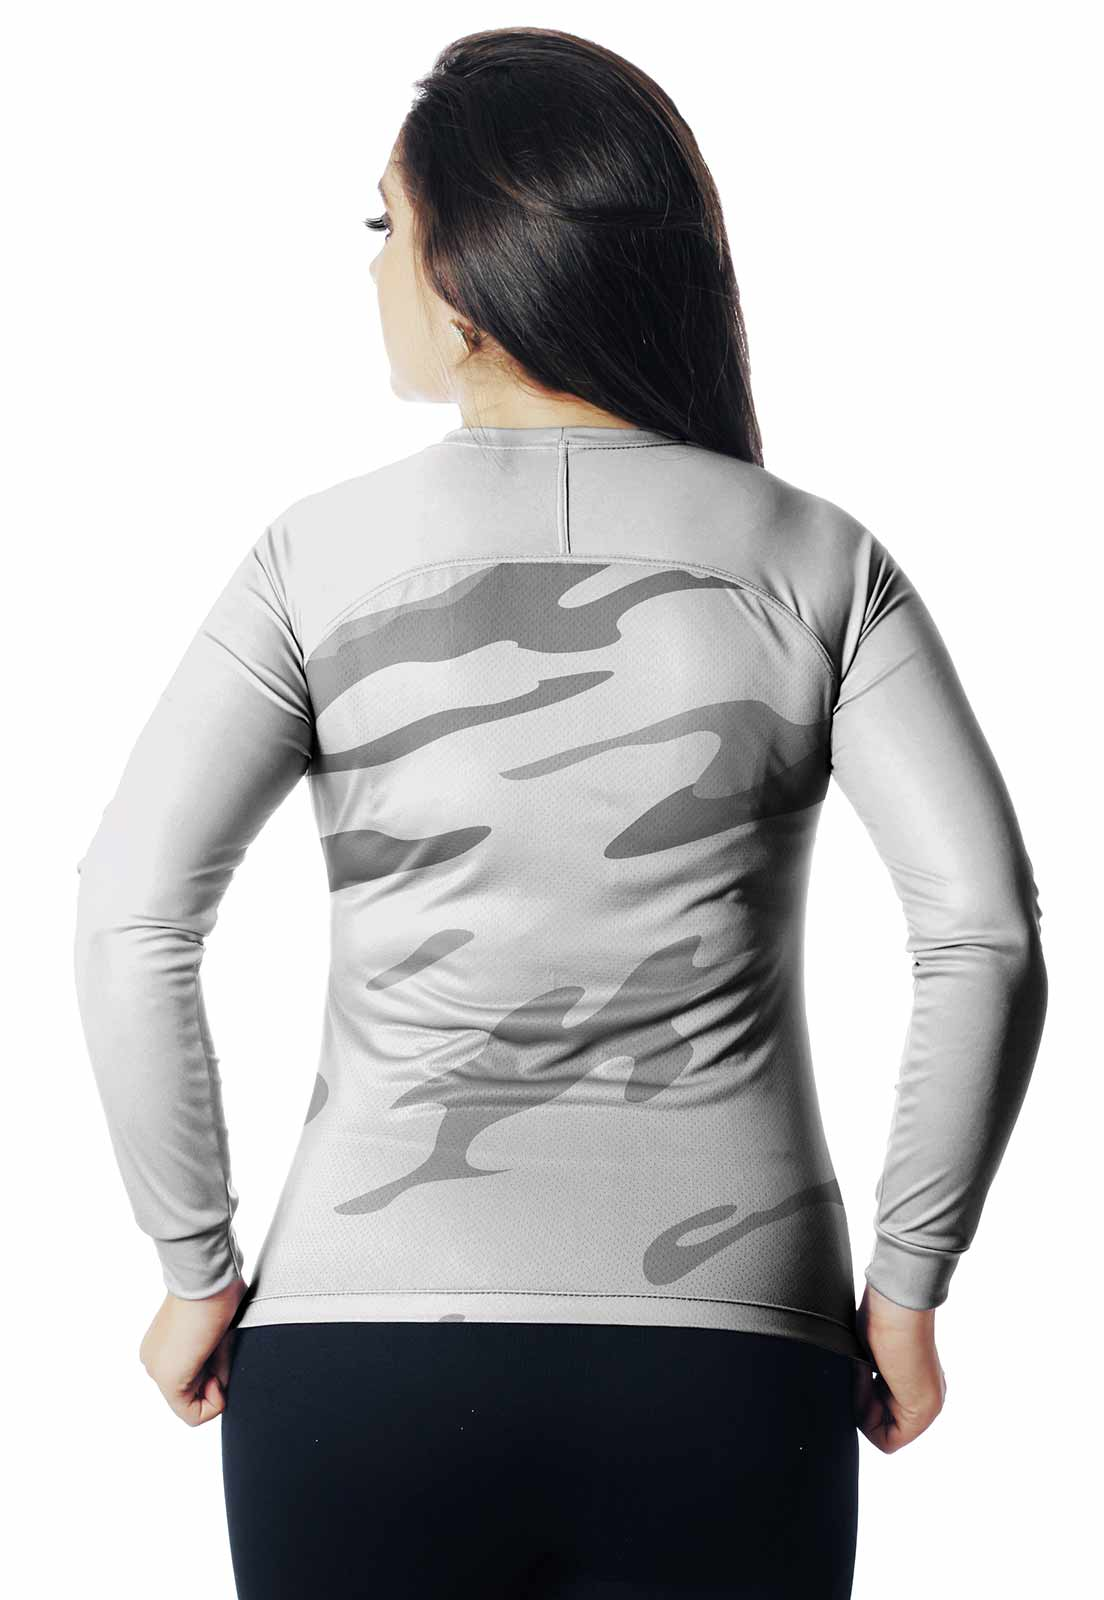 CAMISA DE PESCA CASUAL LAZER PROTEÇÃO UV CAMUFLADA 10 REAL HUNTER FEMININA  - REAL HUNTER OUTDOORS